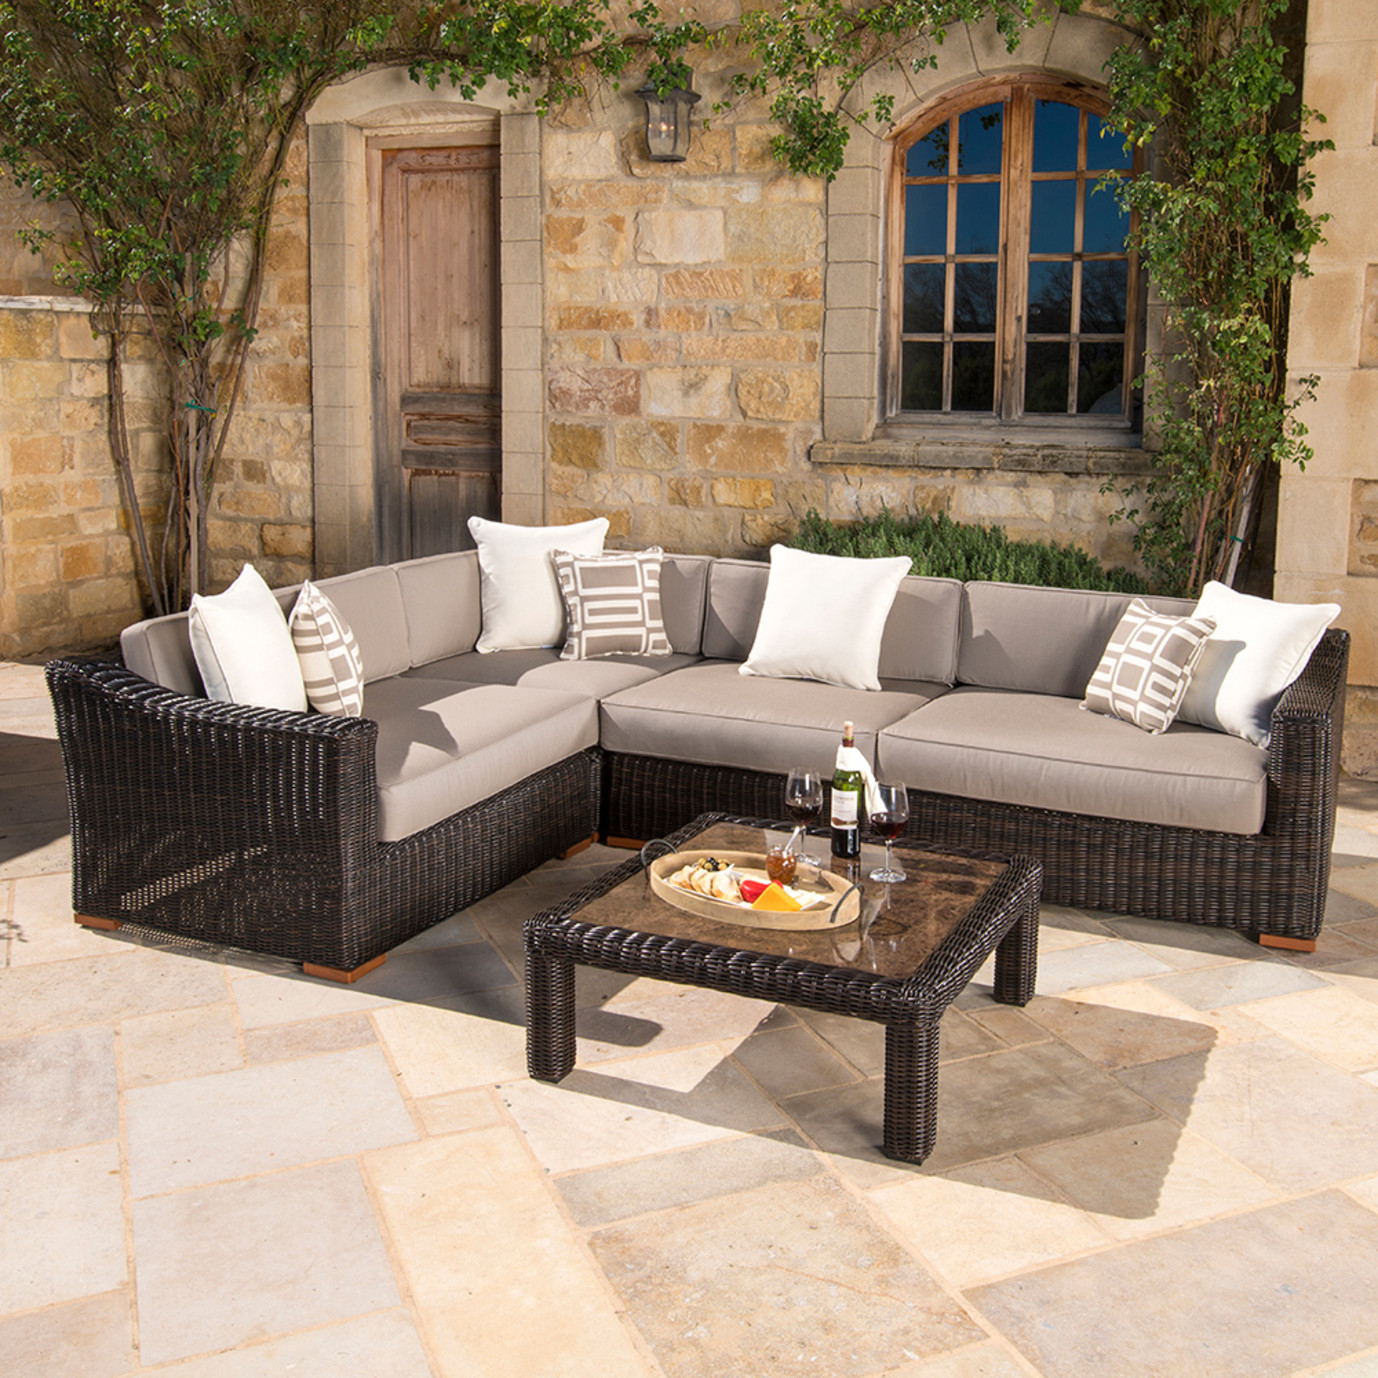 Resort™ Deluxe 5pc Sectional Set - Espresso/ Frank Stone